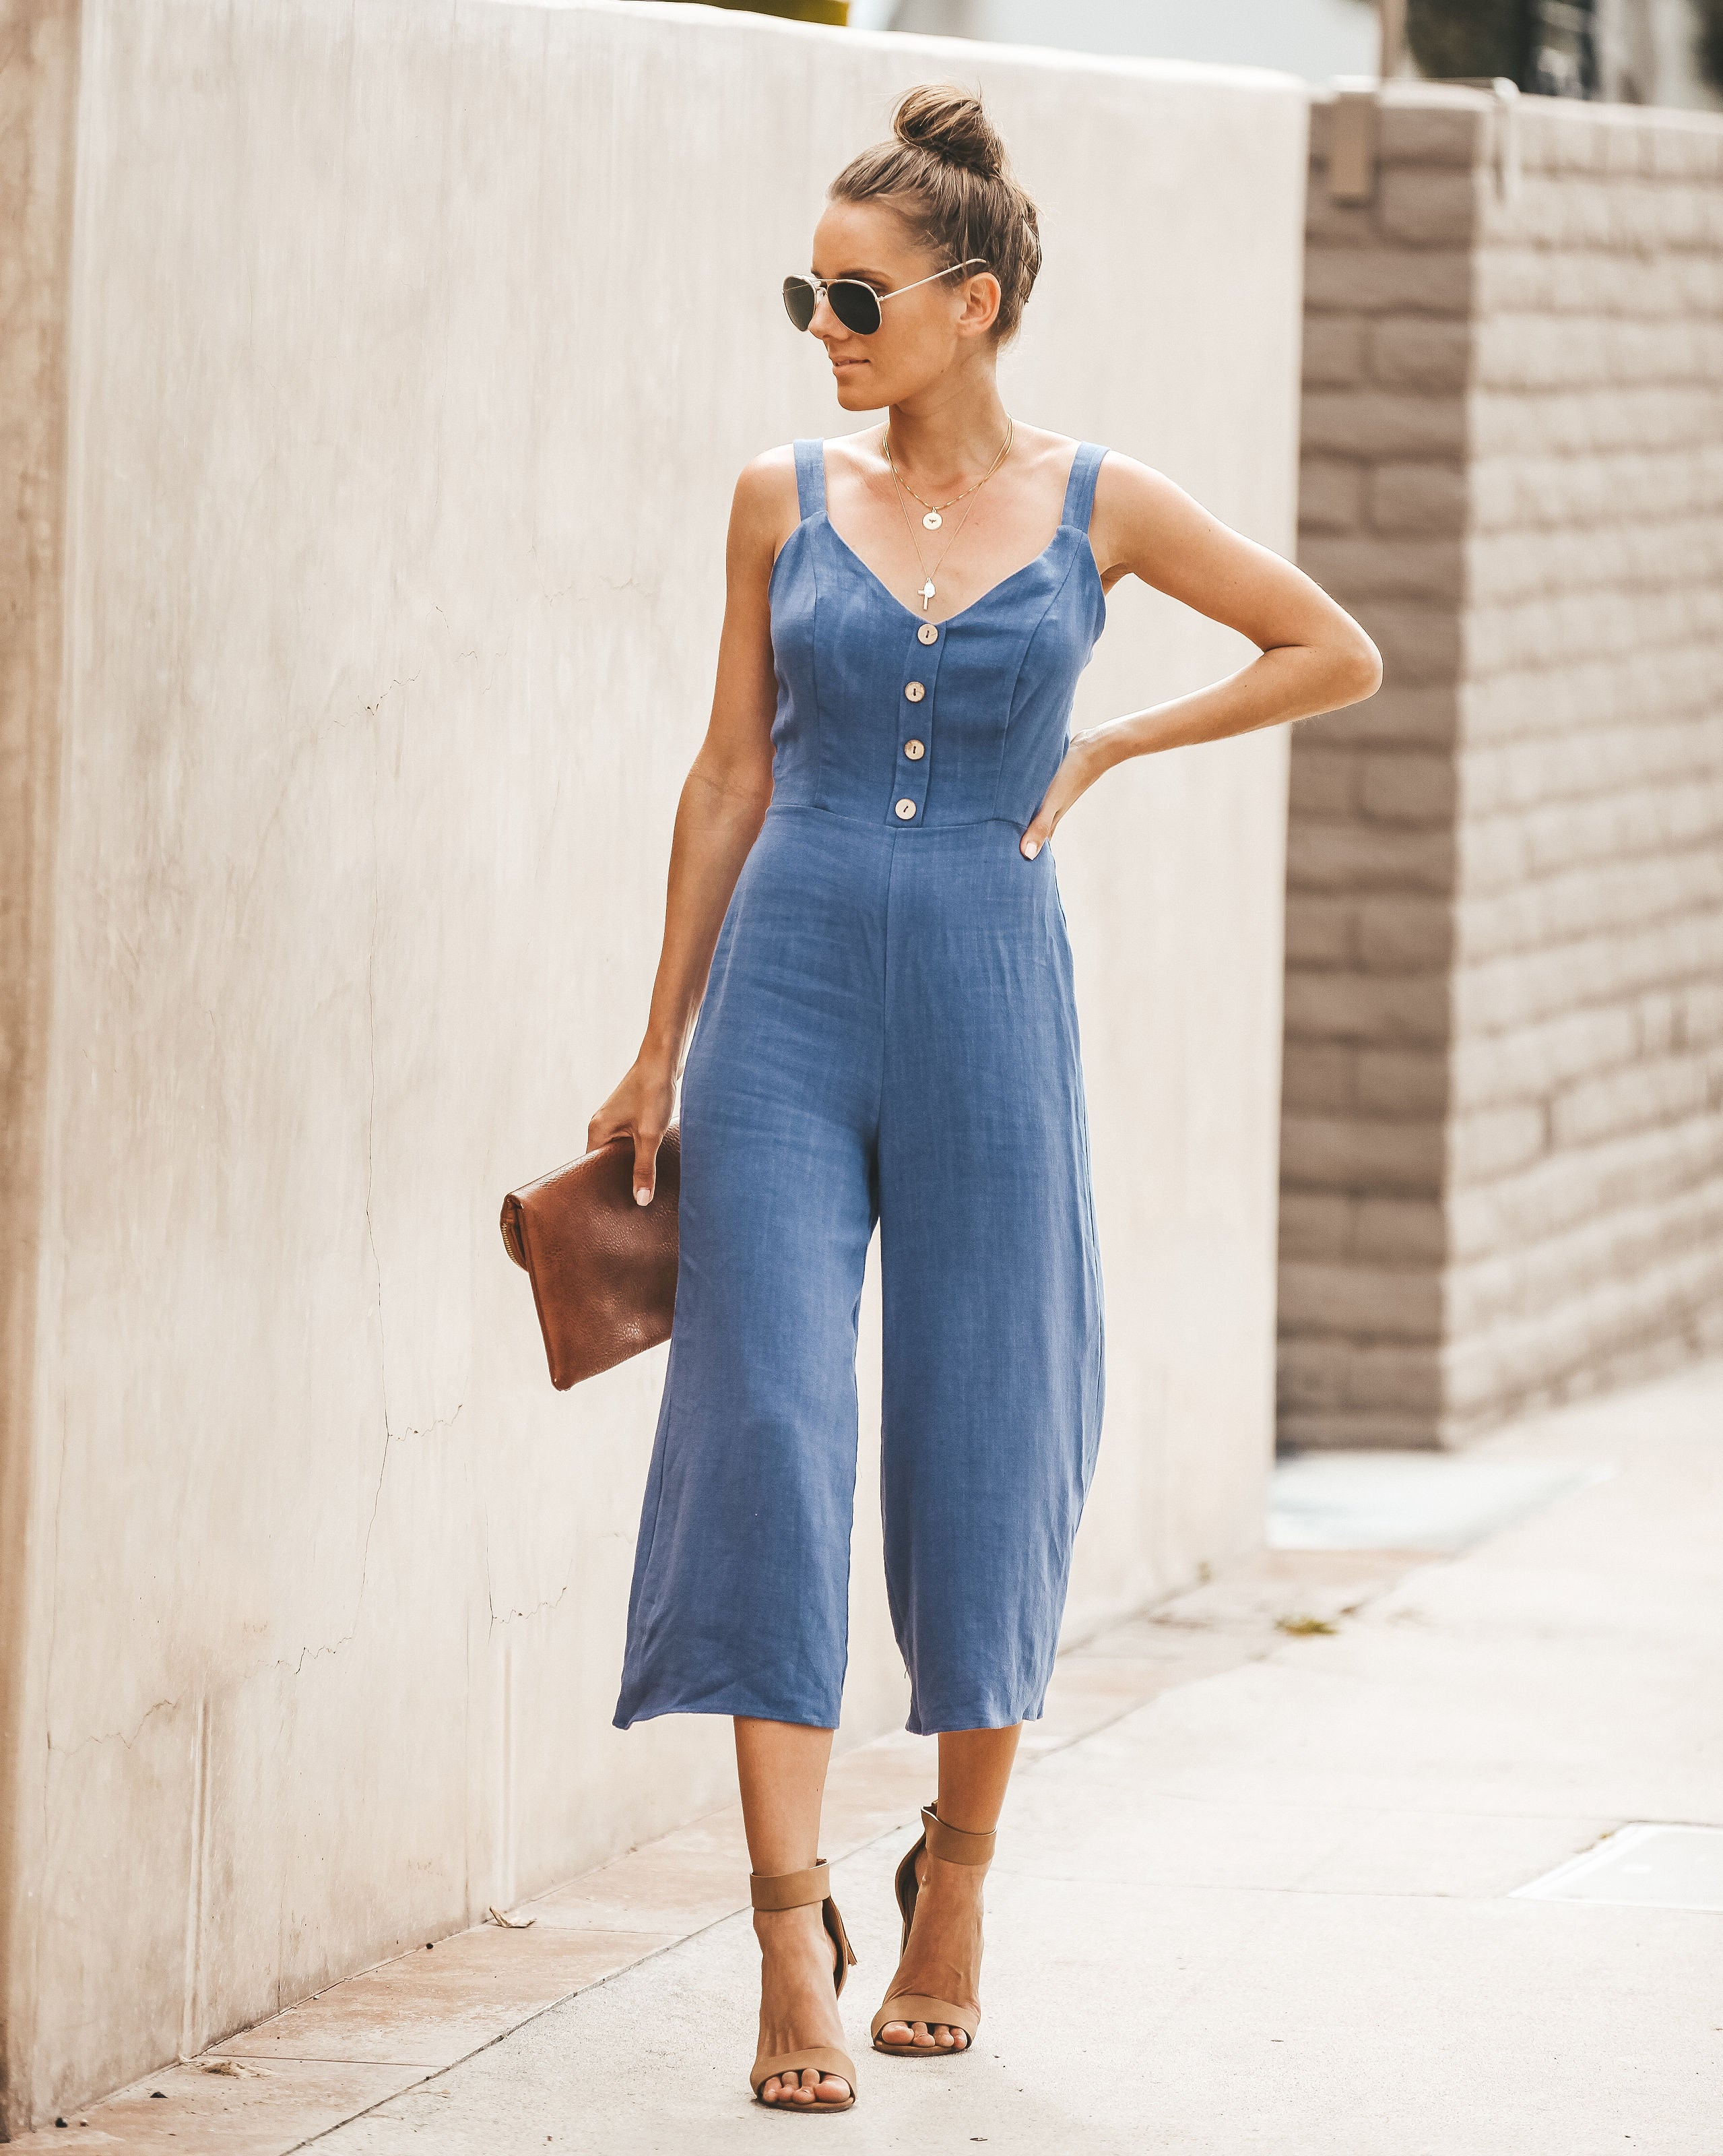 a32374bcb2c Detail Product. ← Home - 50% SALE - Meadow Tie Back Jumpsuit - Navy - FINAL  SALE